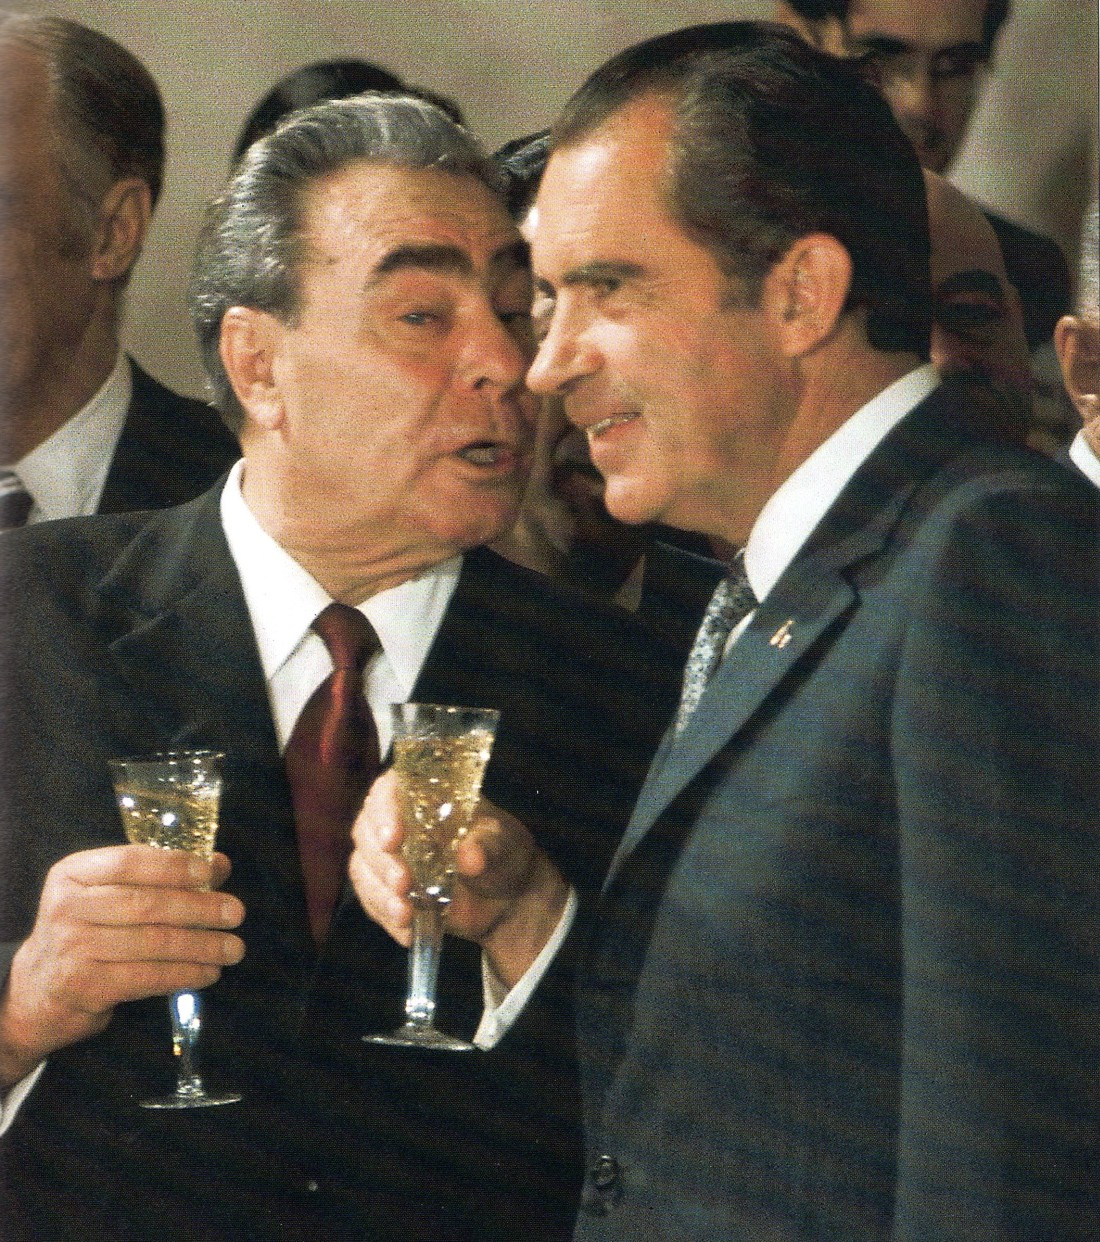 richard nixons masterful war tactics In 1969, having begun his first international trip as president of the united states,  richard nixon faced a very different world than he would.